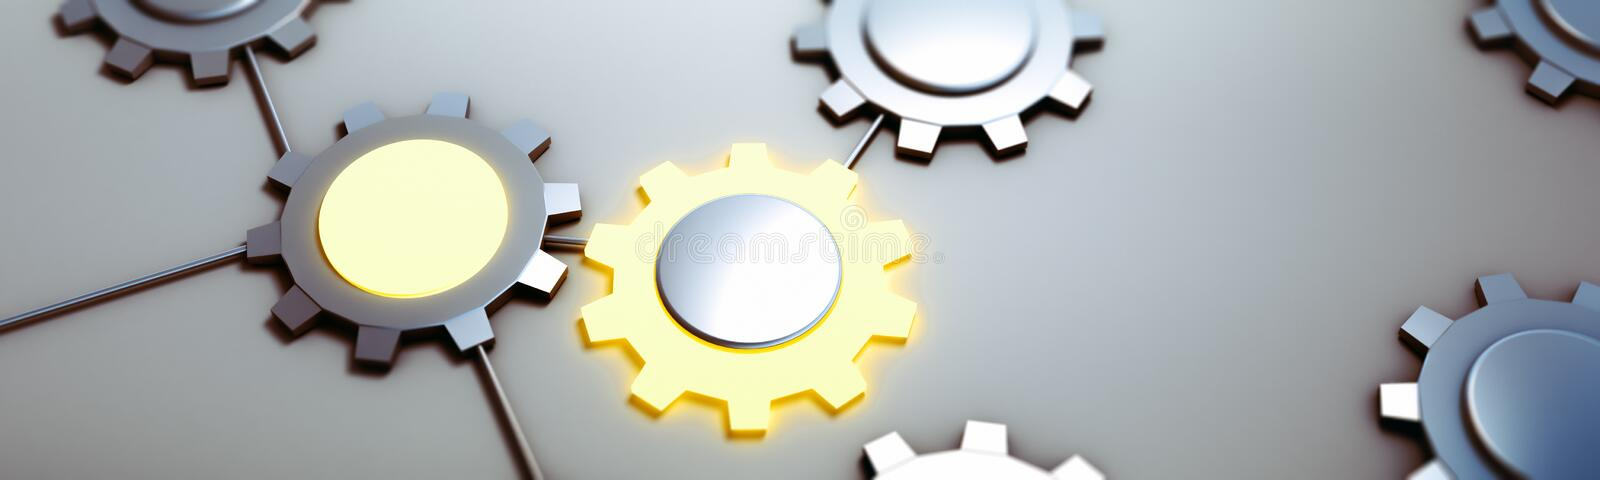 Database gears concept 3d rendering. Database gears concept. Panoramic 3d rendering vector illustration